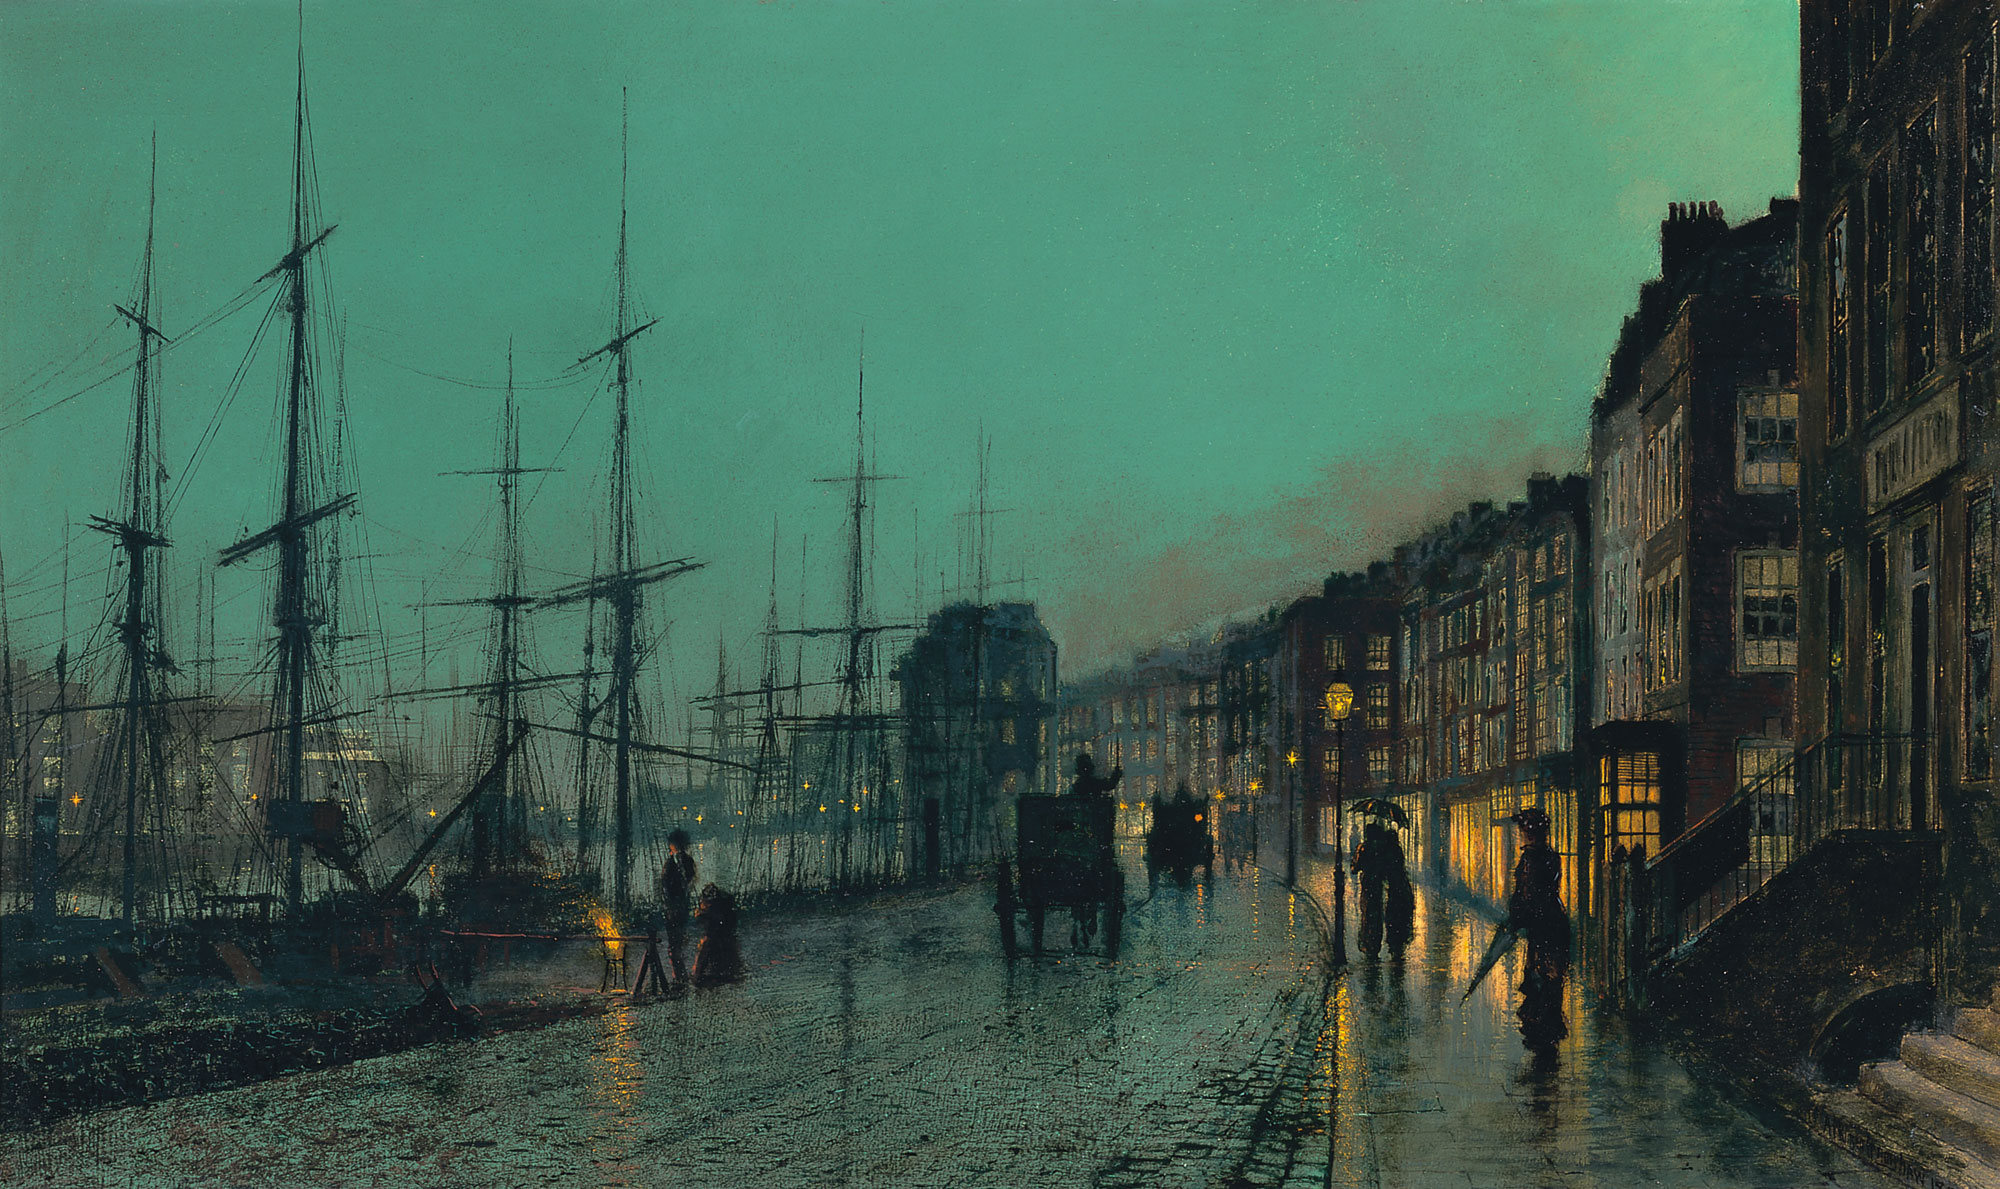 Shipping on the Clyde, by John Atkinson Grimshaw, 1881